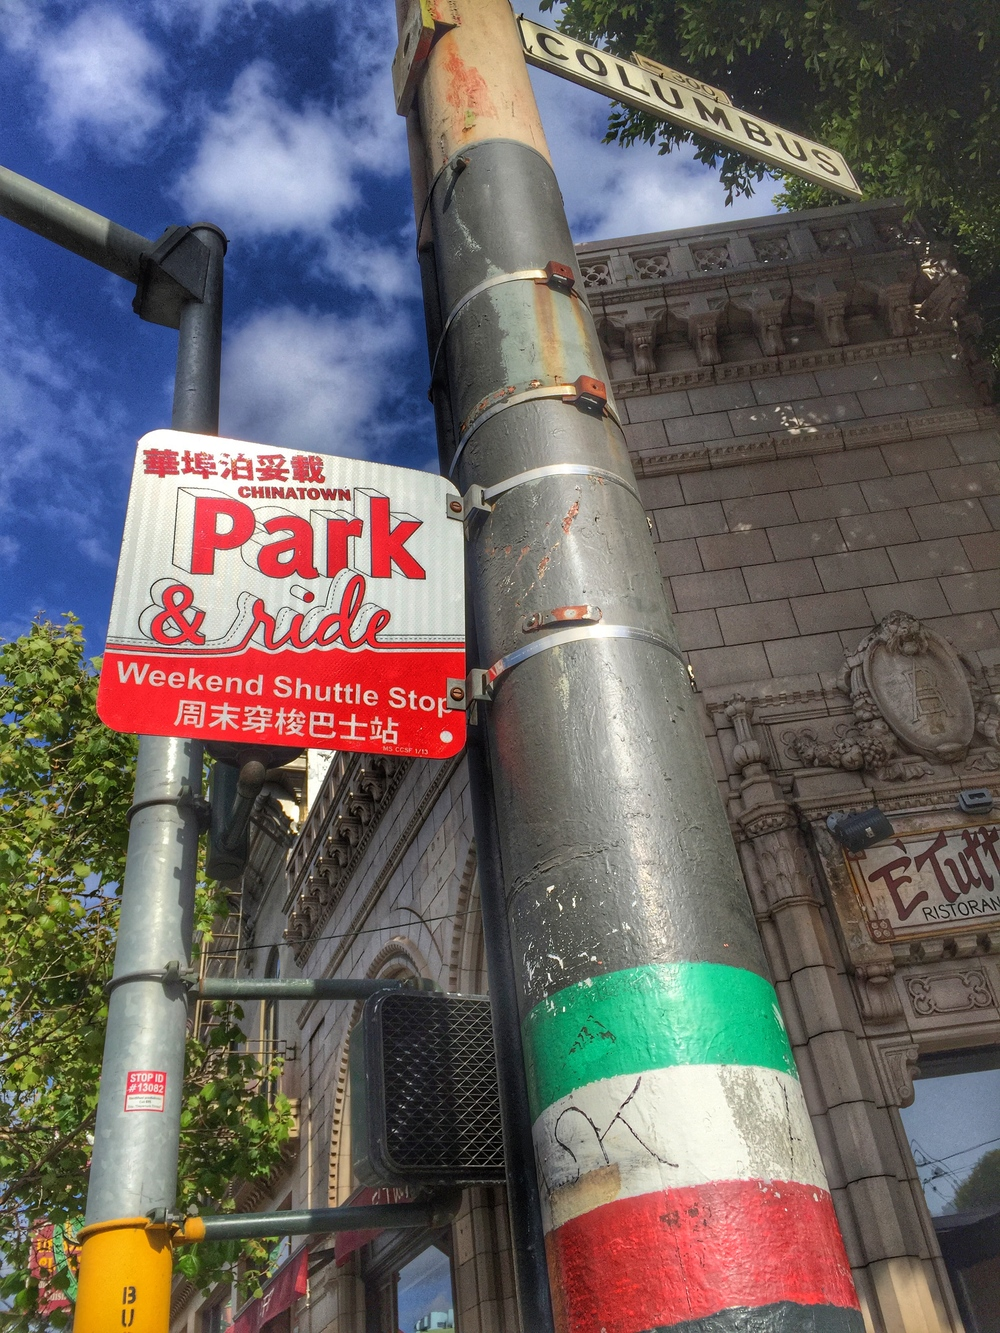 A quintessential representation of blurred culture lines: an Italian flag and a Chinese/English bilingual shuttle stop sign adorning the same pole